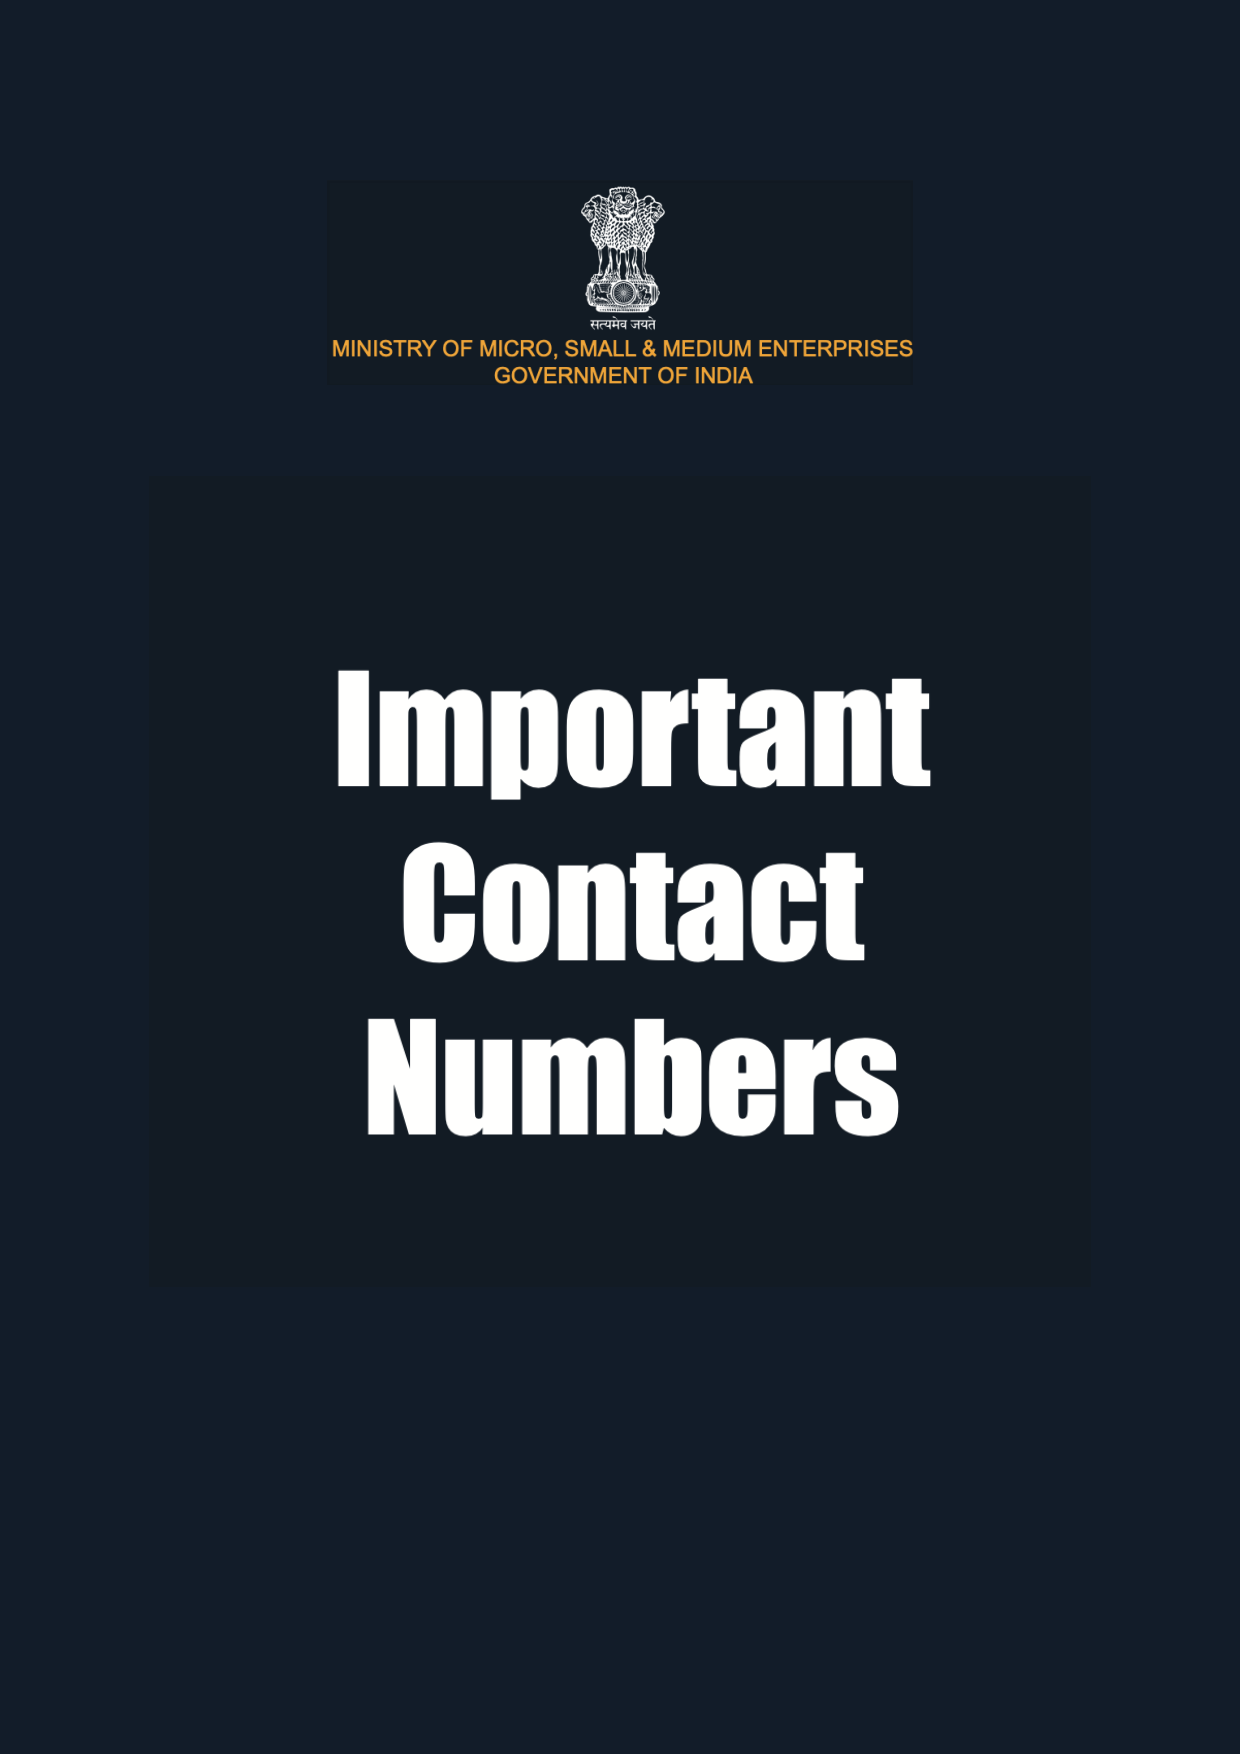 Schemes for MSMEs - Important Contacts